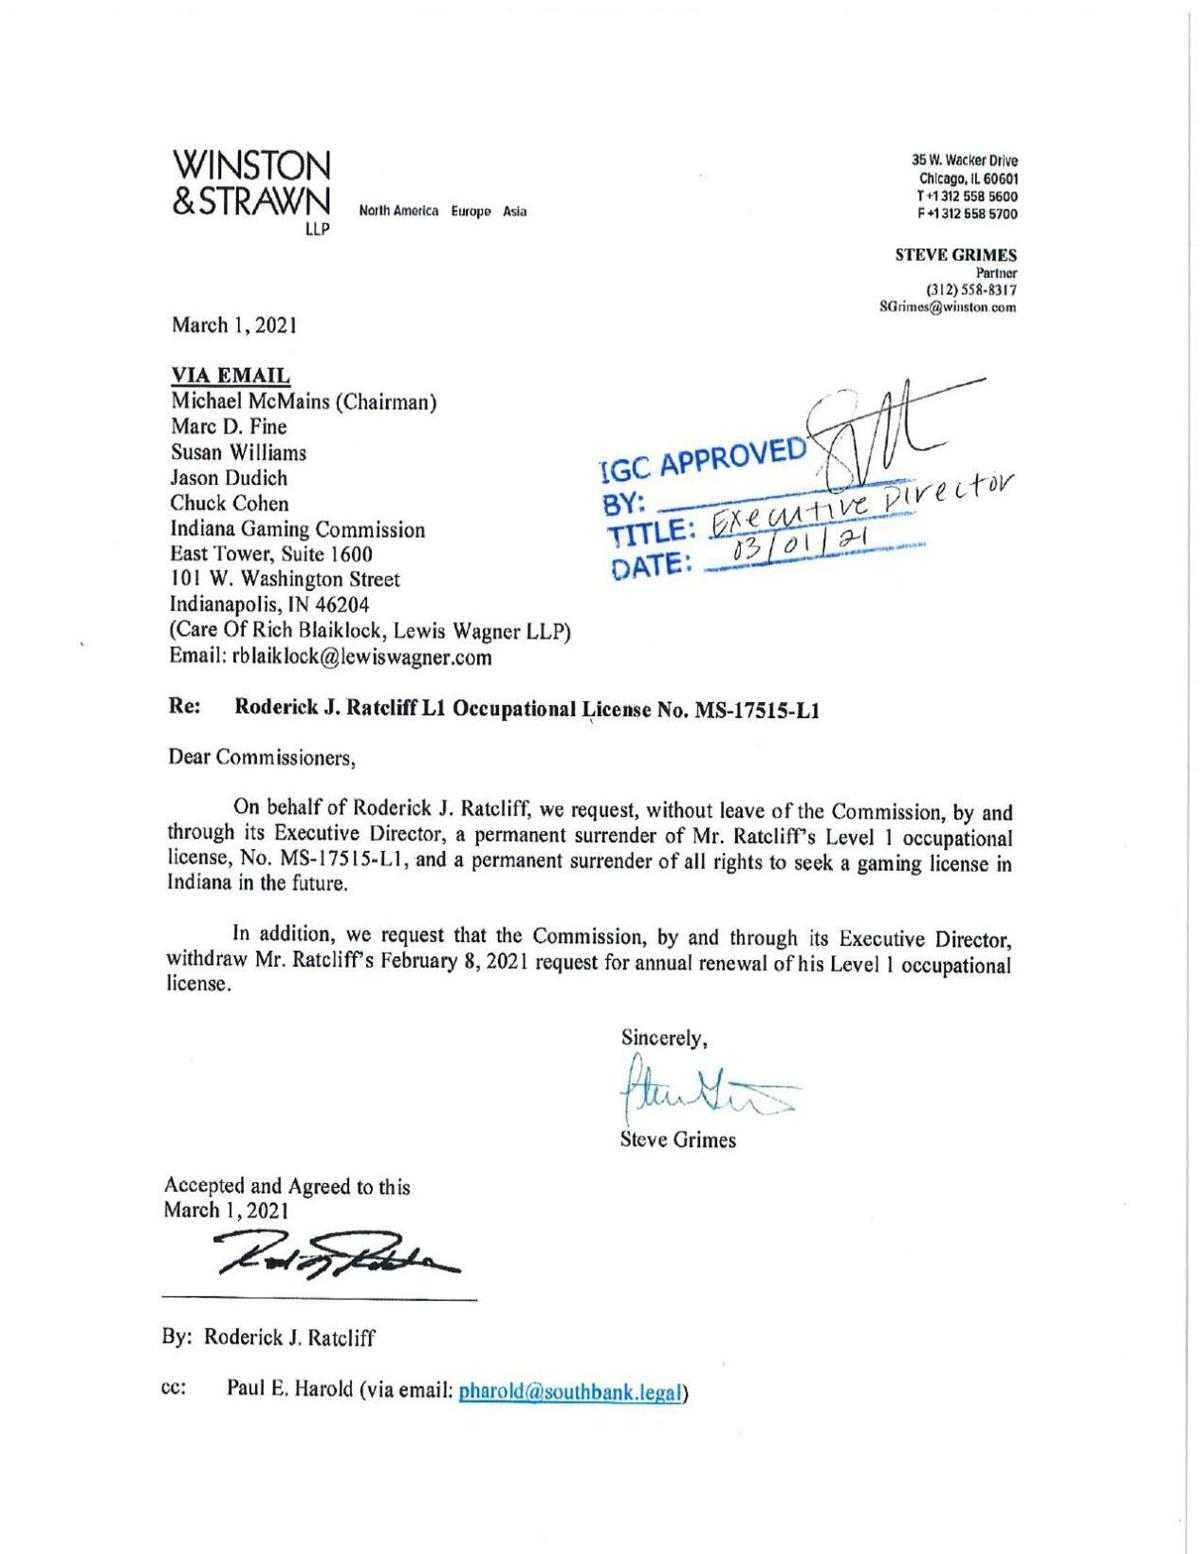 Rod Ratcliff letter surrendering his Indiana occupational gaming license